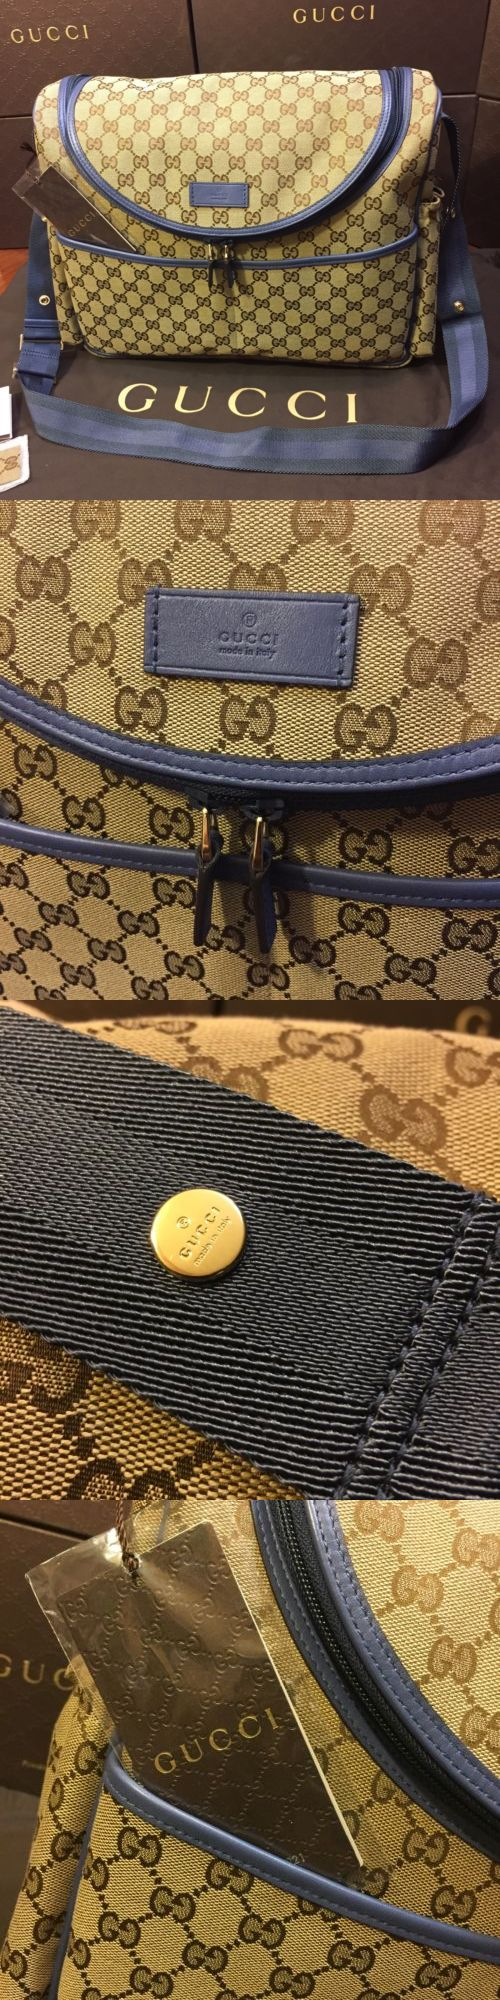 baby and kid stuff: New Gucci Original Gg Canvas Baby Boy Diaper Bag Blue Trim And Strap BUY IT NOW ONLY: $1073.95